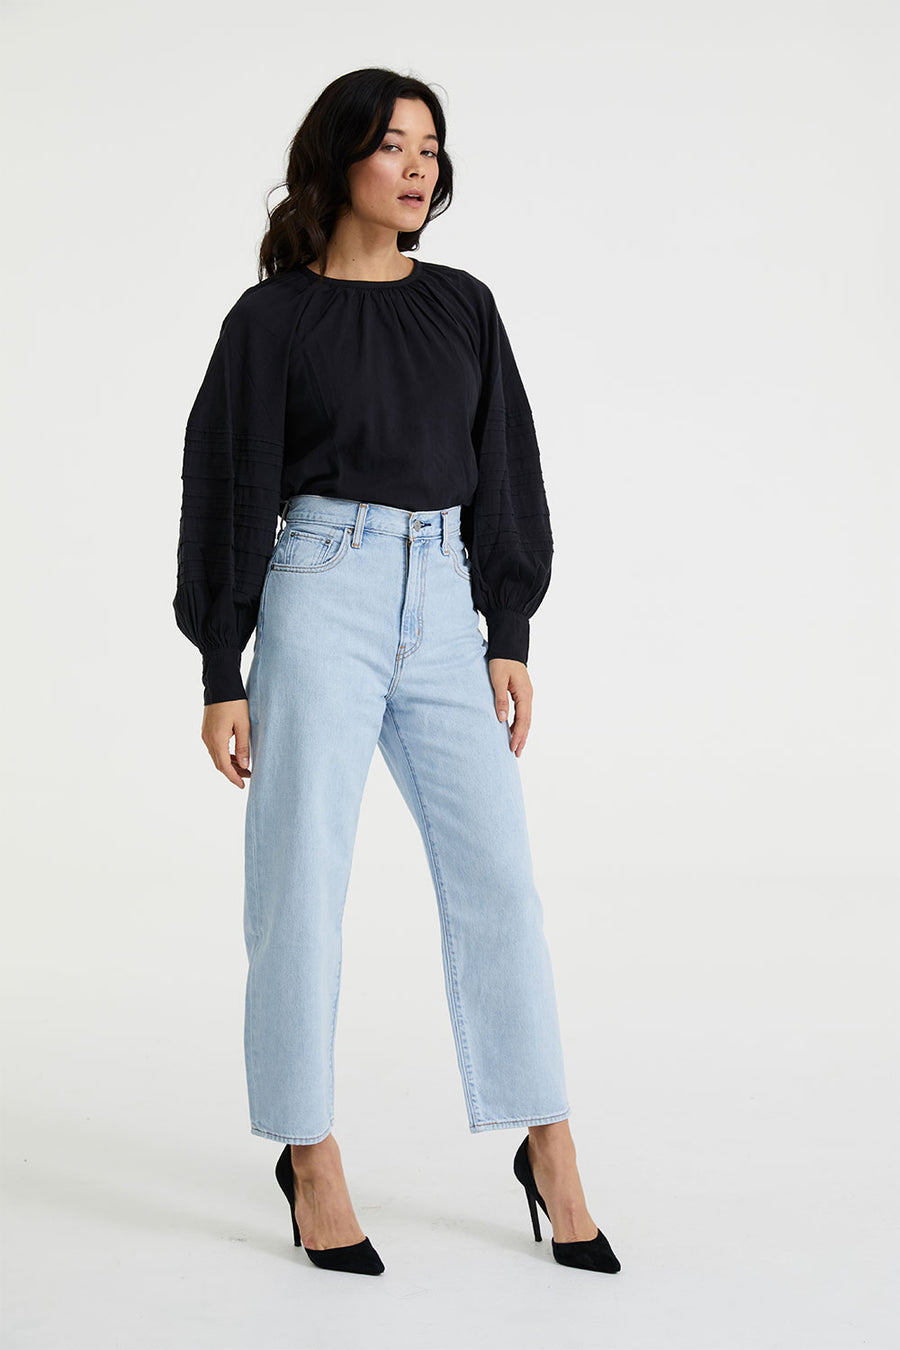 Balloon Leg | Dad Jokes | Denim NZ | LEVI'S NZ | Black Box Boutique Auckland | Womens Fashion NZ